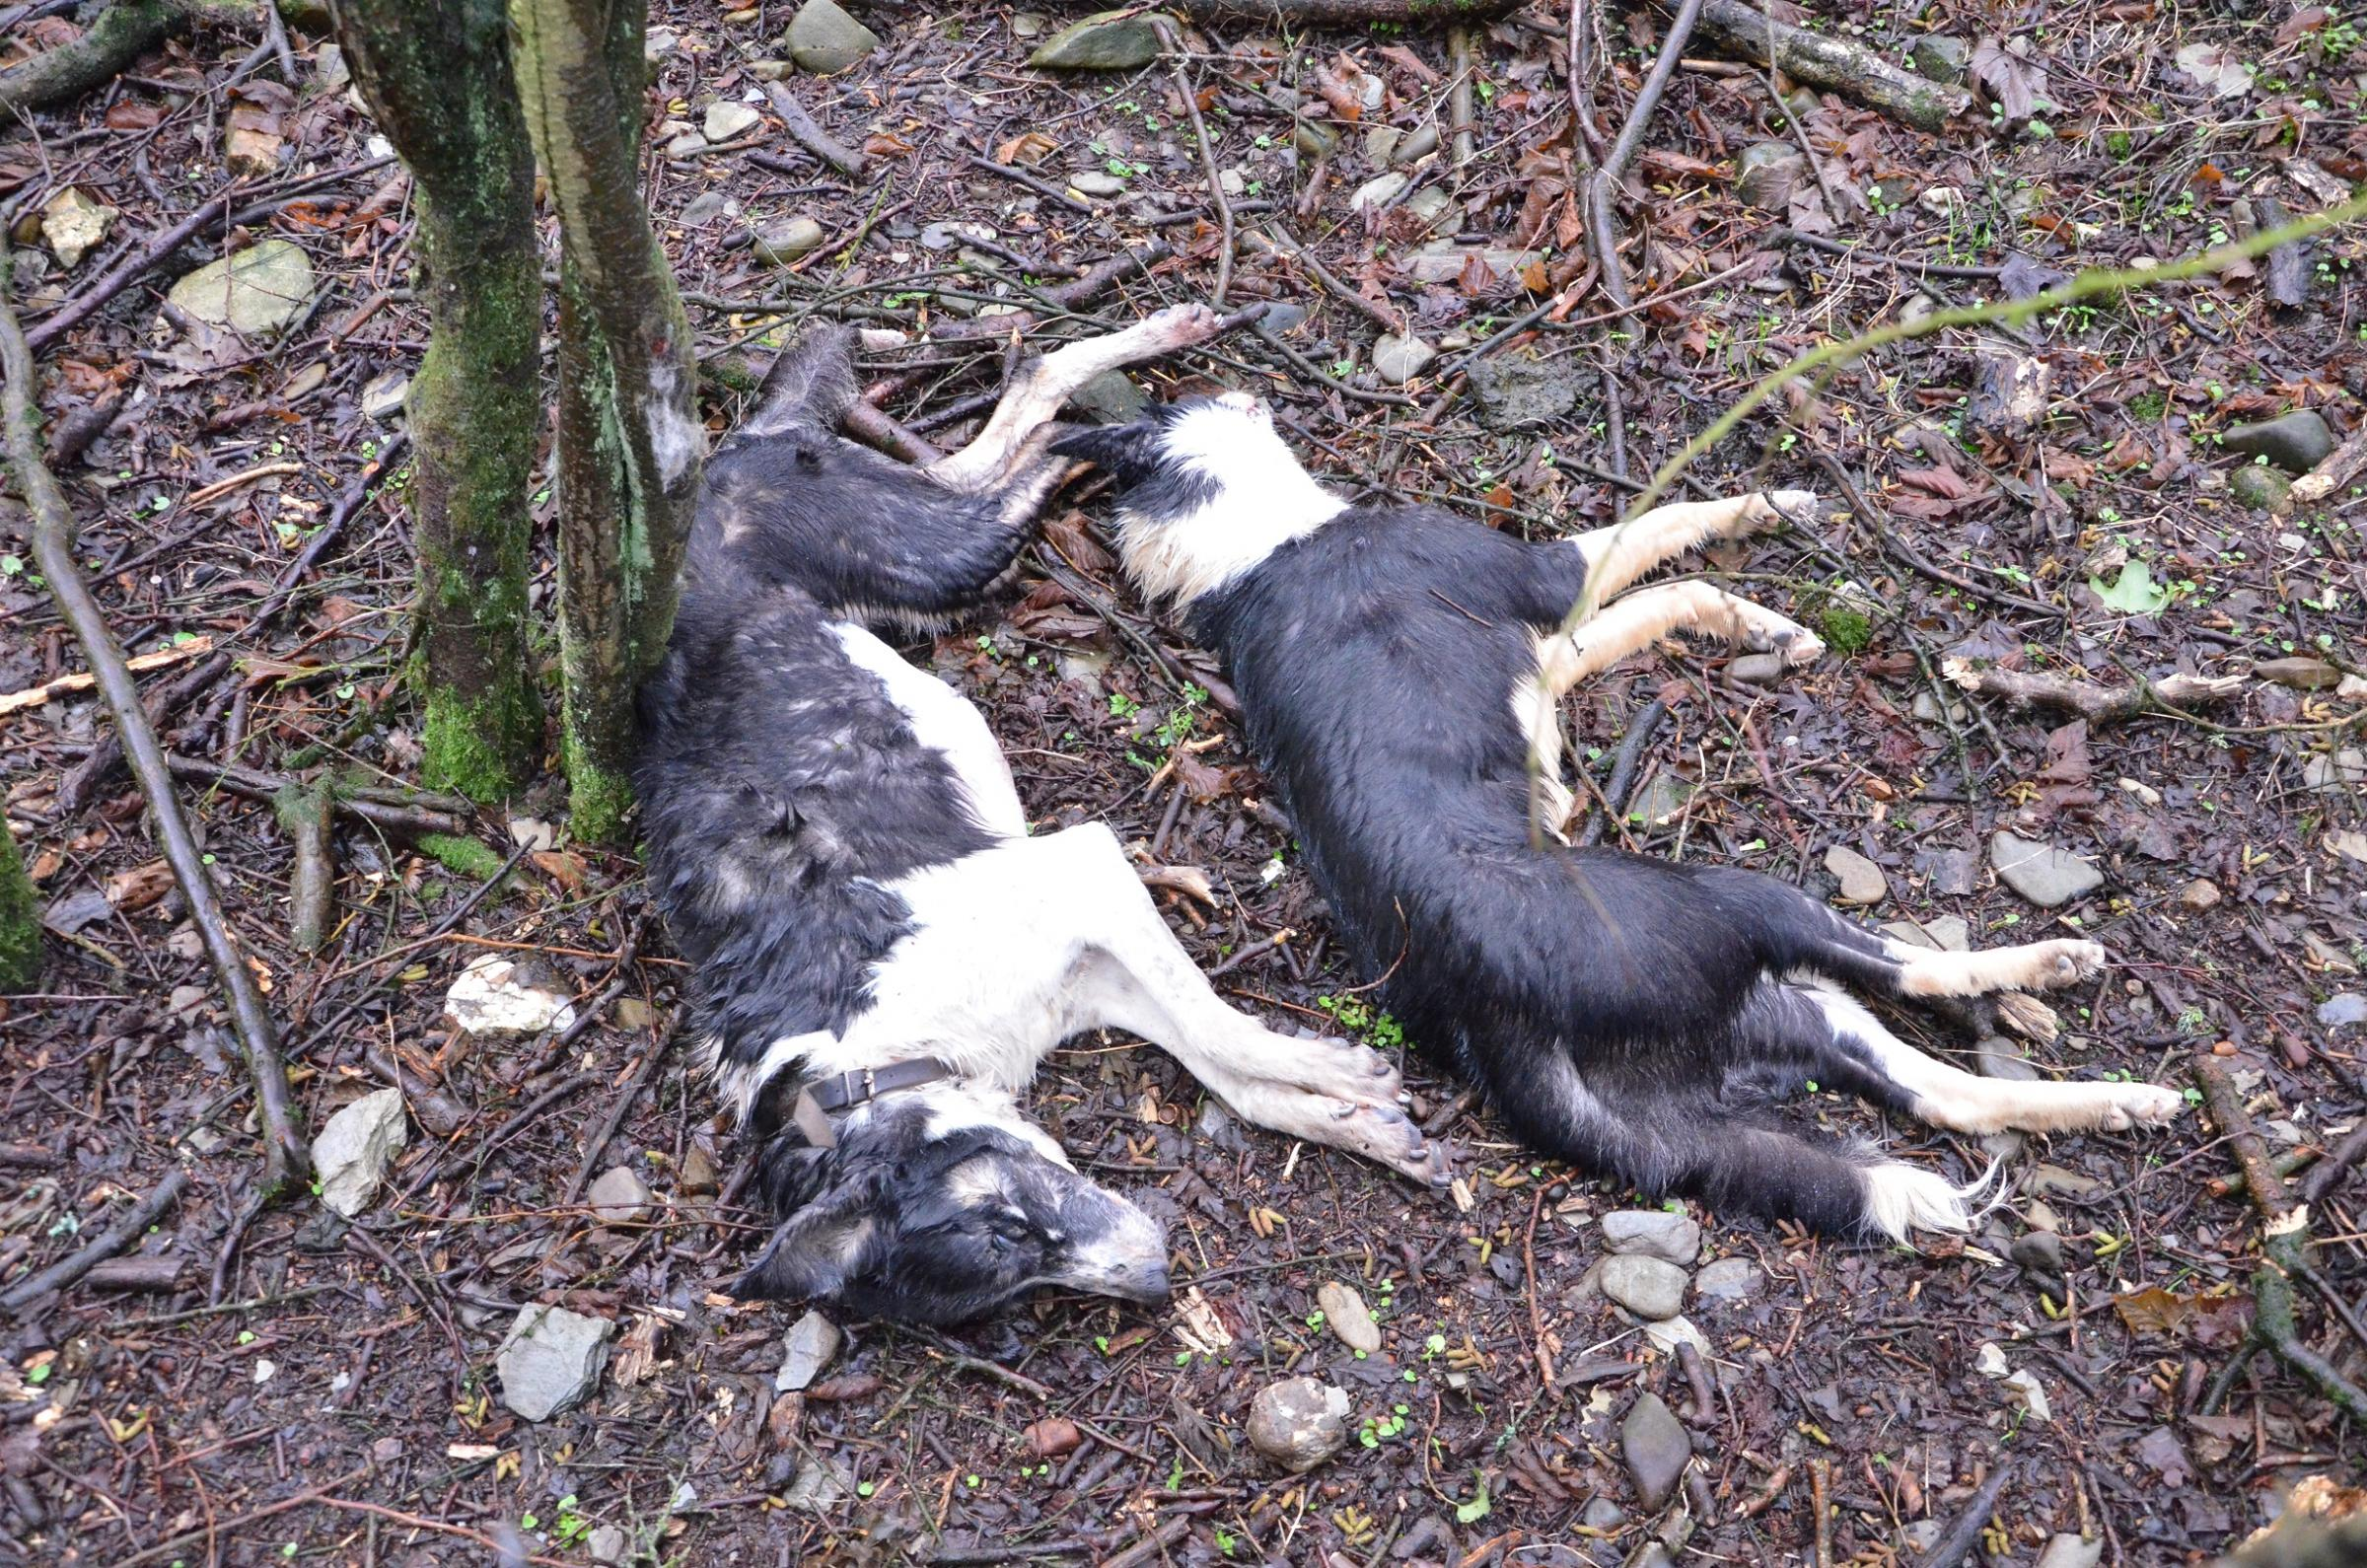 The collies were found at Crosswell. Picture: RSPCA.